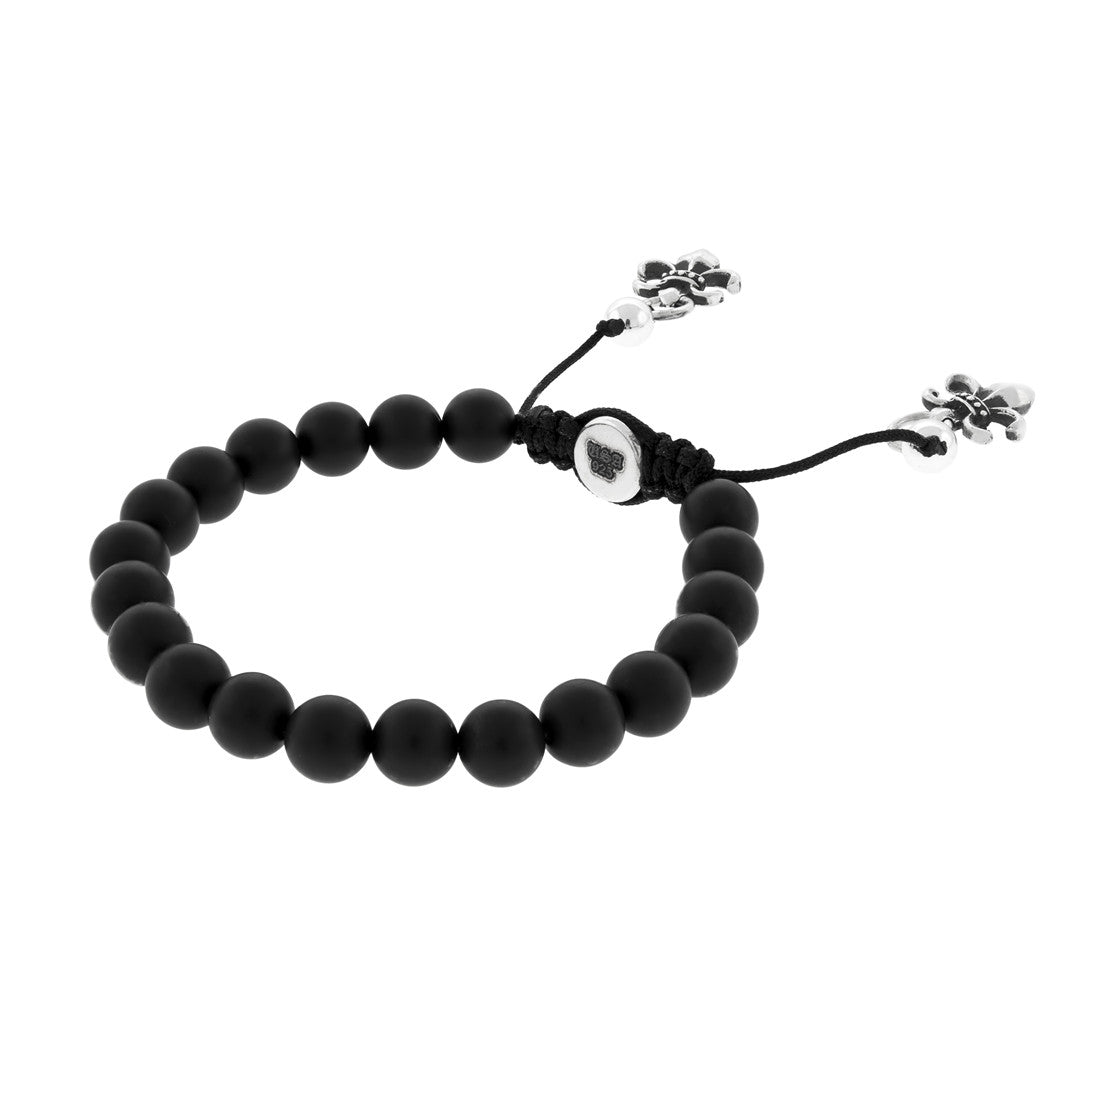 Little Buddha Bead Bracelet with Silver and Onyx Beads